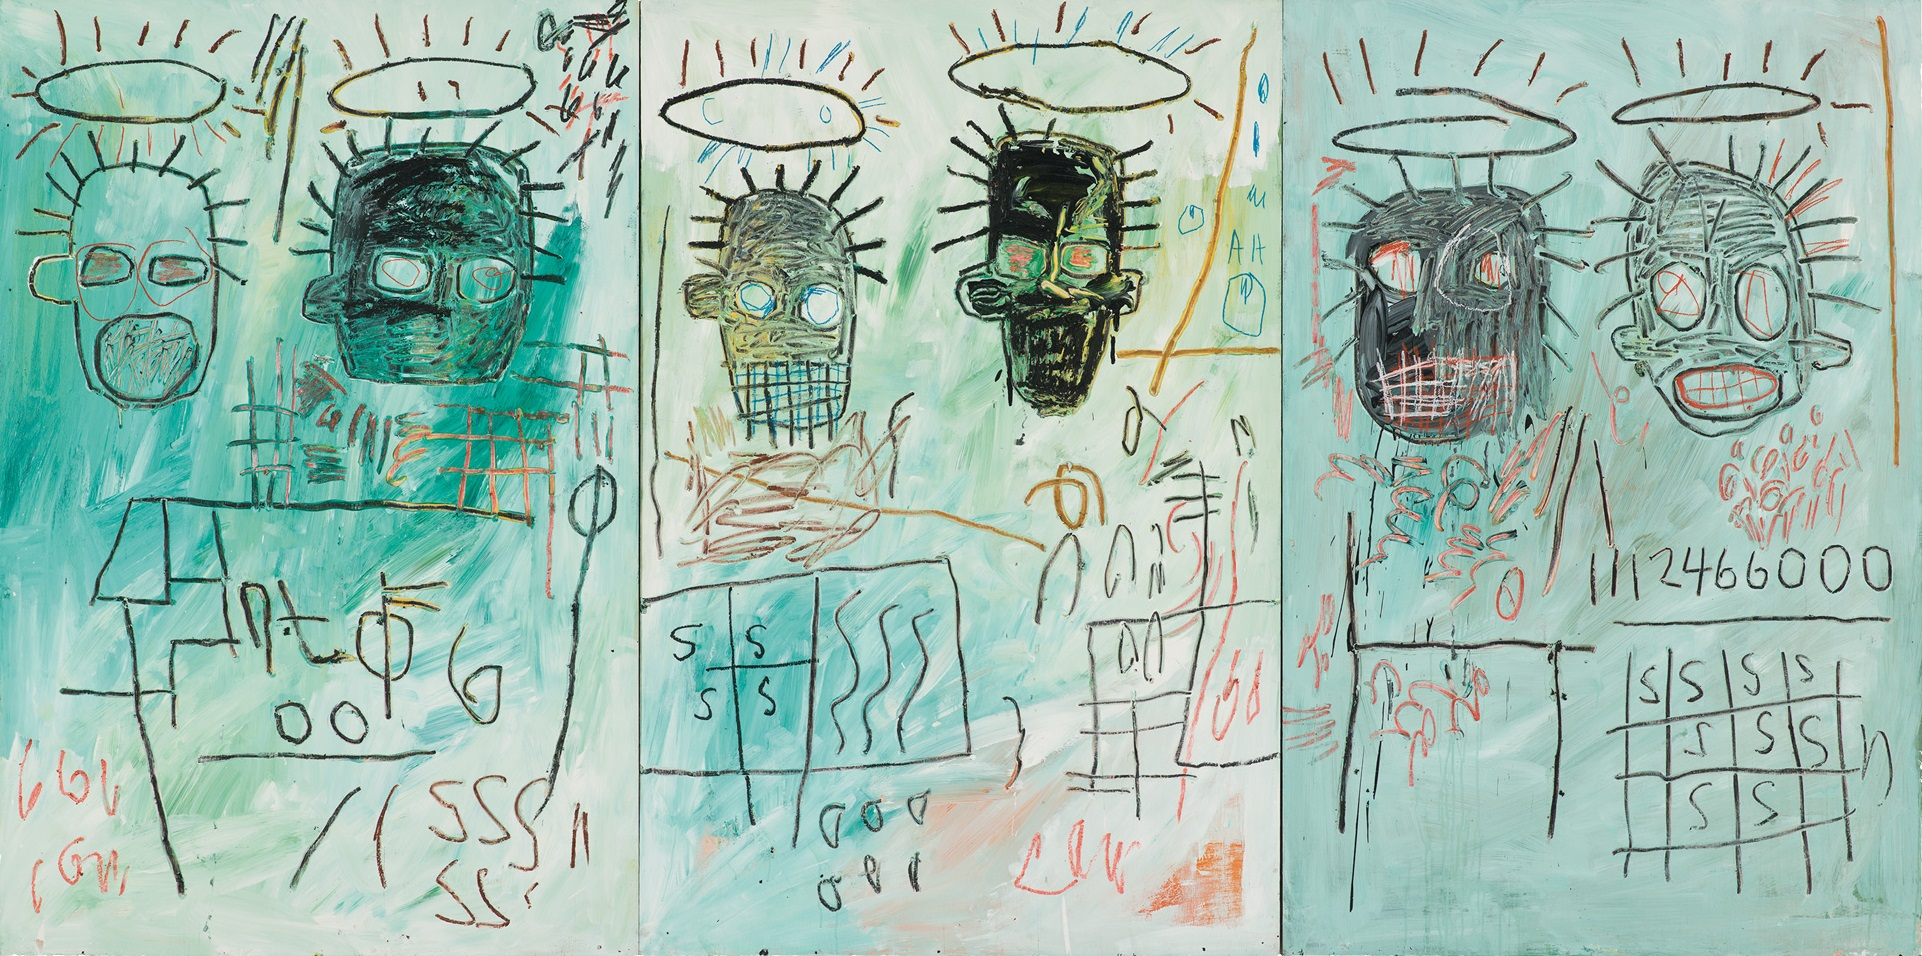 Jean-Michel-Basquiat-Six Crimee-cool sht